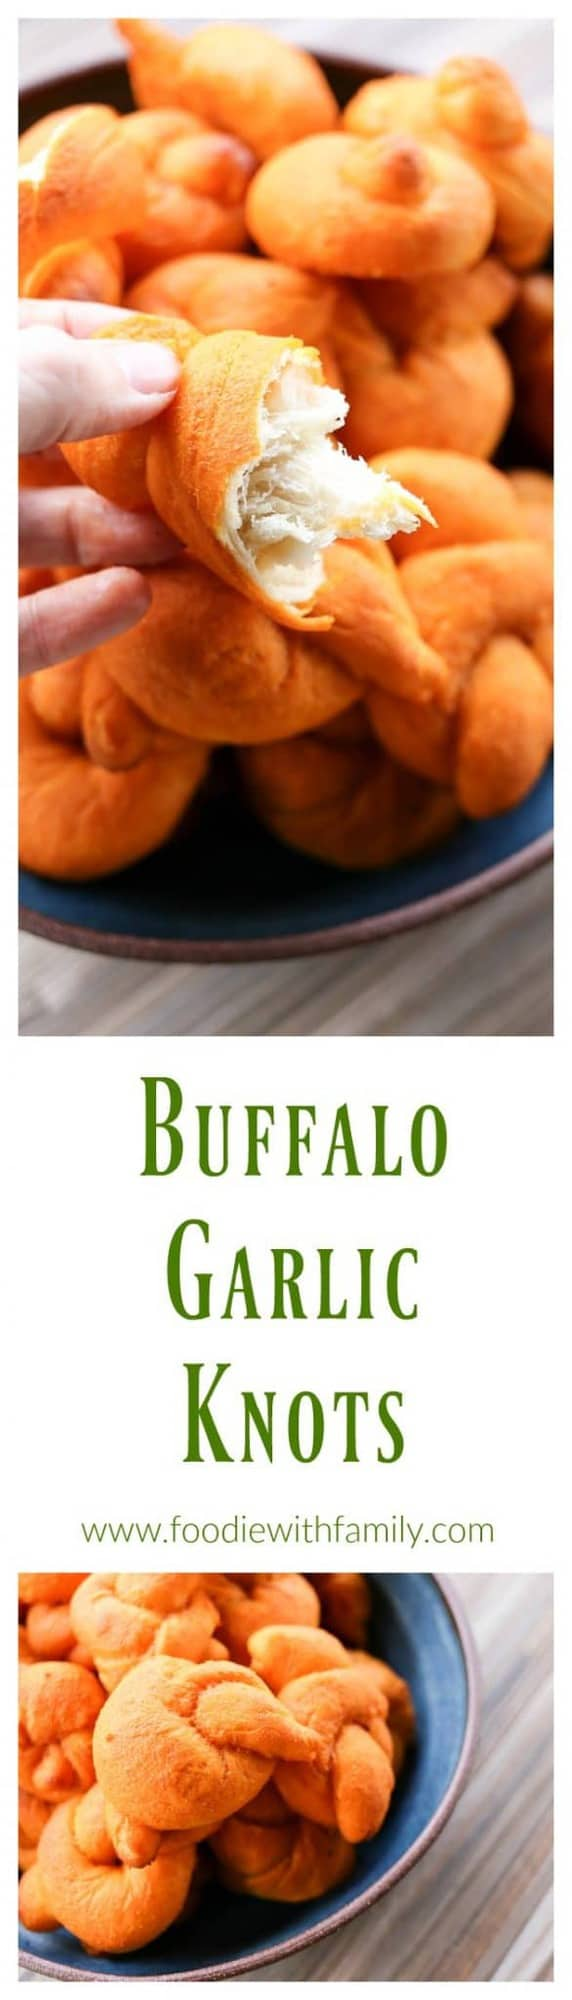 Buffalo Garlic Knots: tender, three bite sized spicy Buffalo Garlic Knots from foodiewithfamily.com